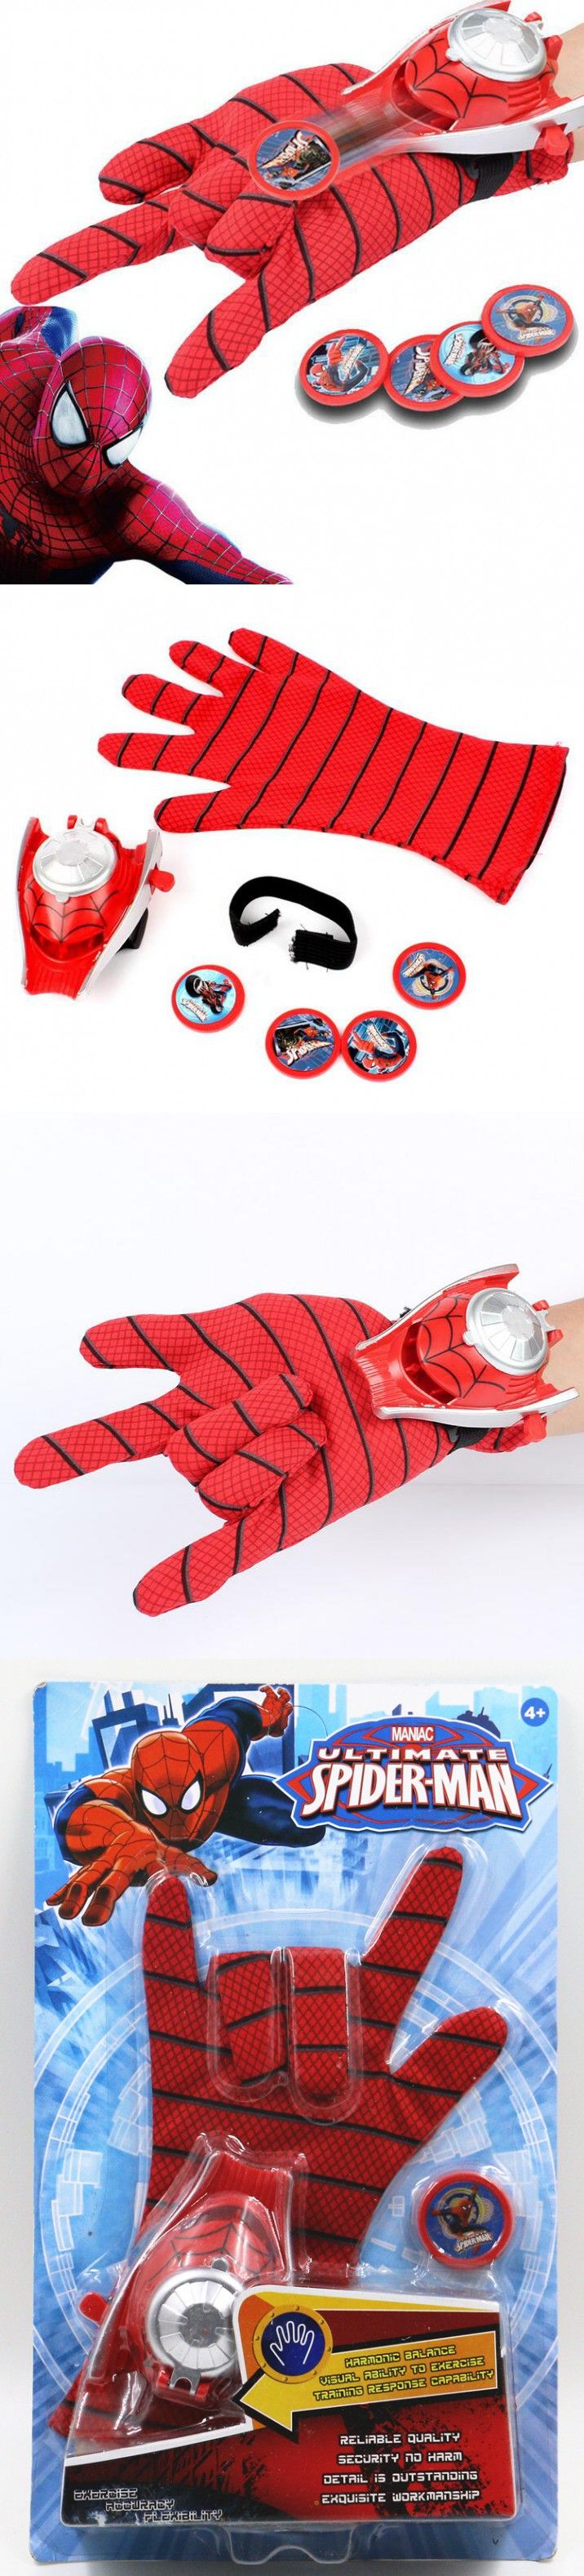 DC Justice League Superhero Spiderman Cosplay Glove with Flashing and Sounding,Kids Toy Spiderman Glove Launcher with 4 Frisbee